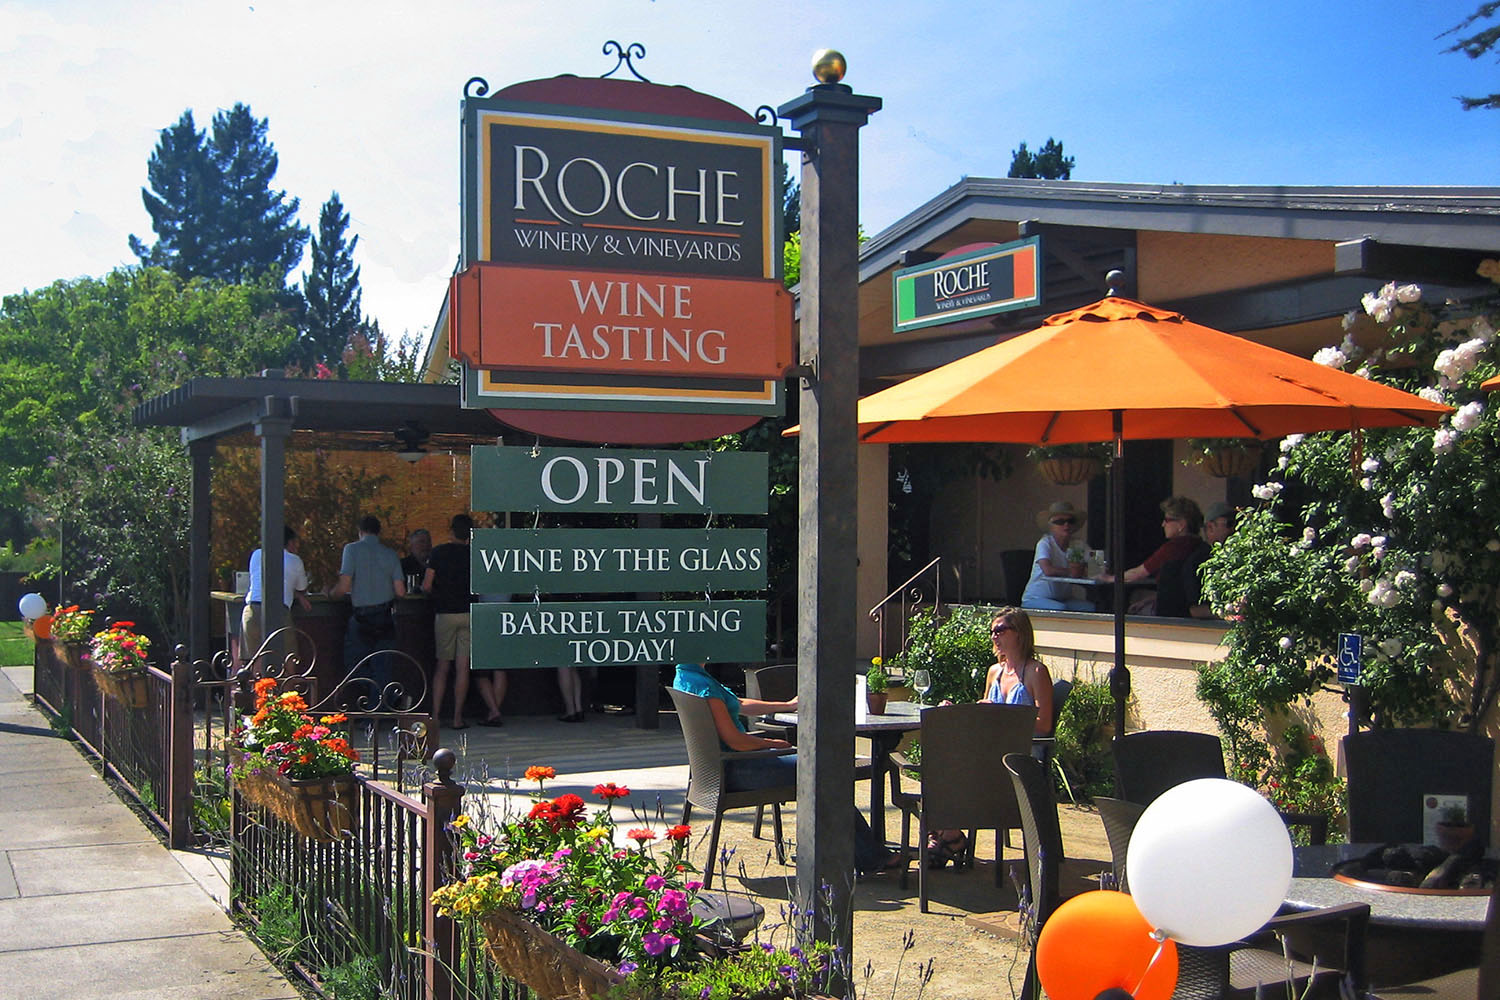 Tasting Room during the day